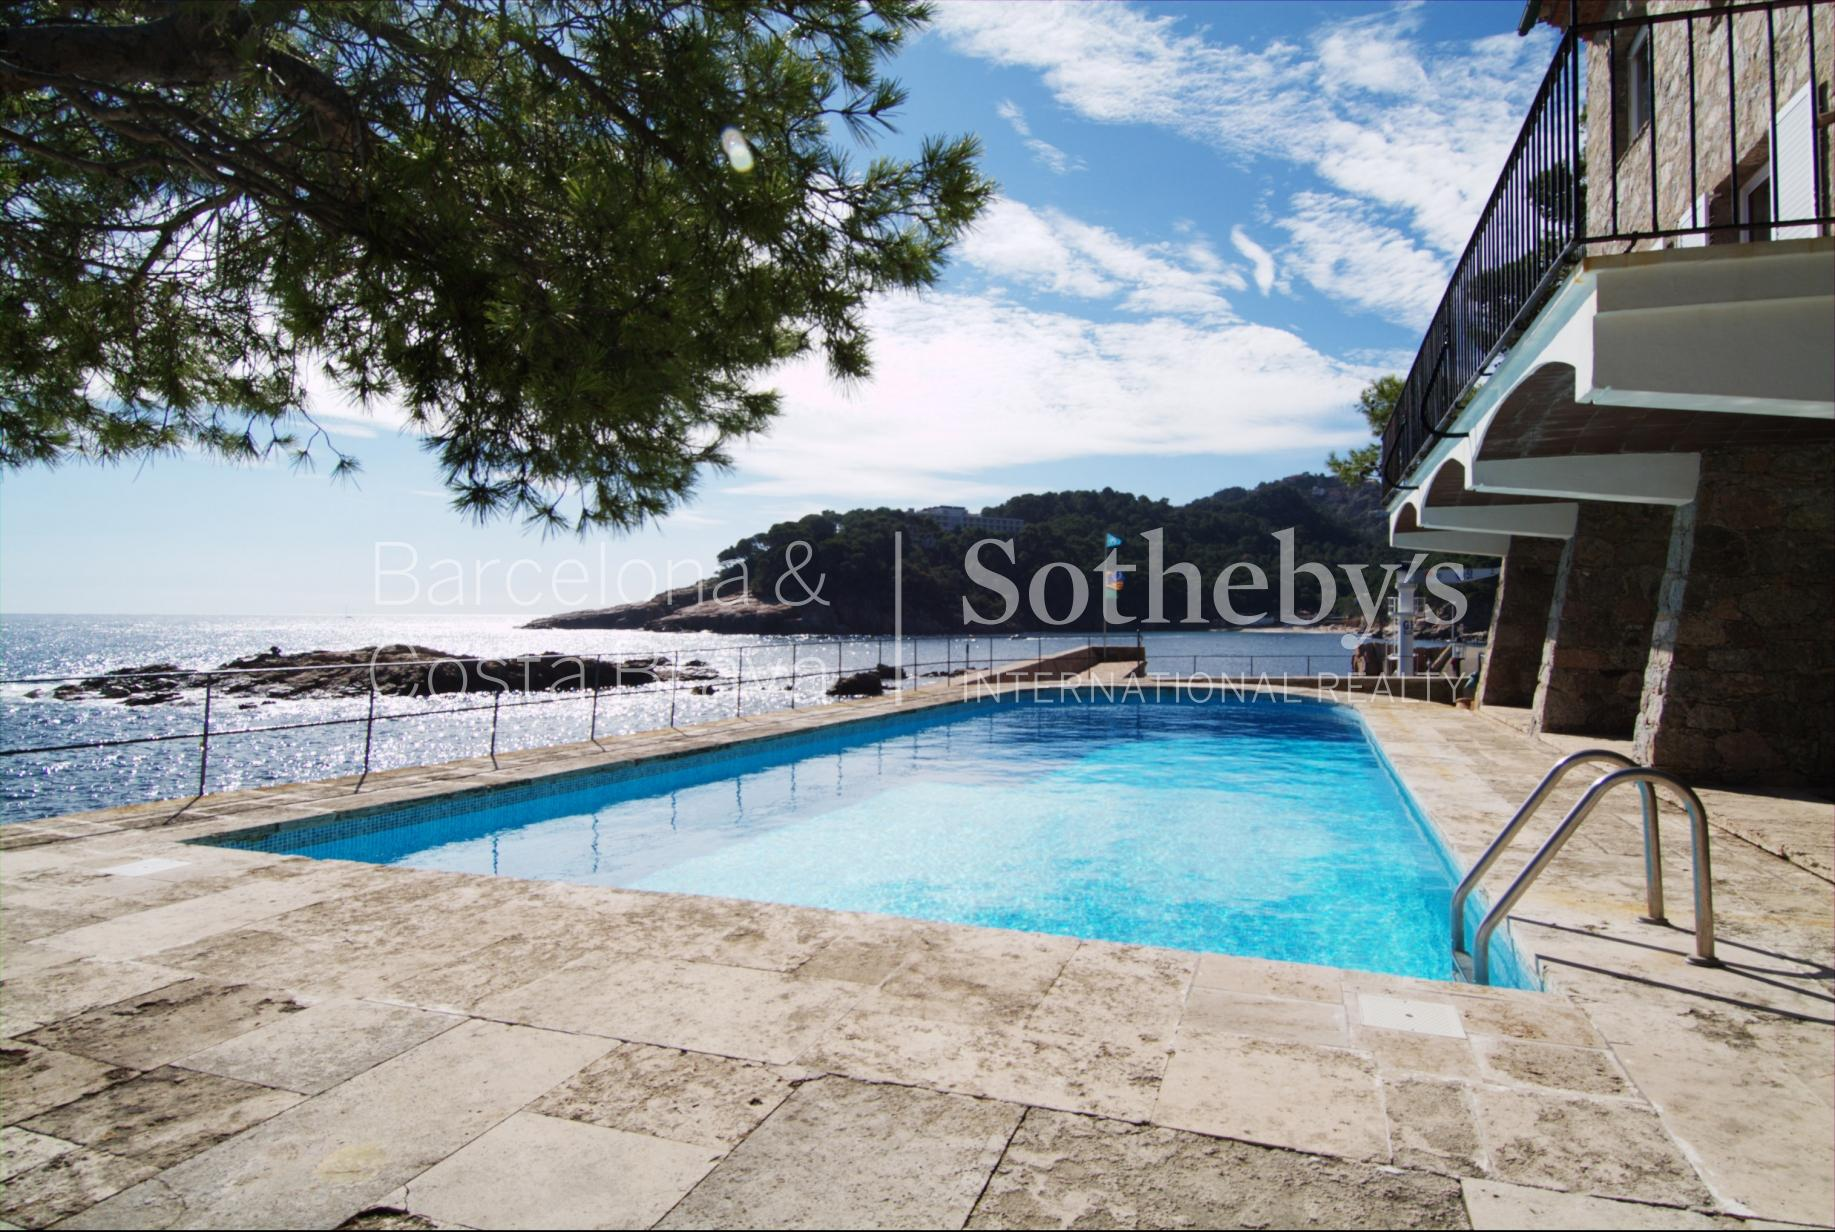 Property For Sale at Property in Aiguablava: a singular house facing the sea